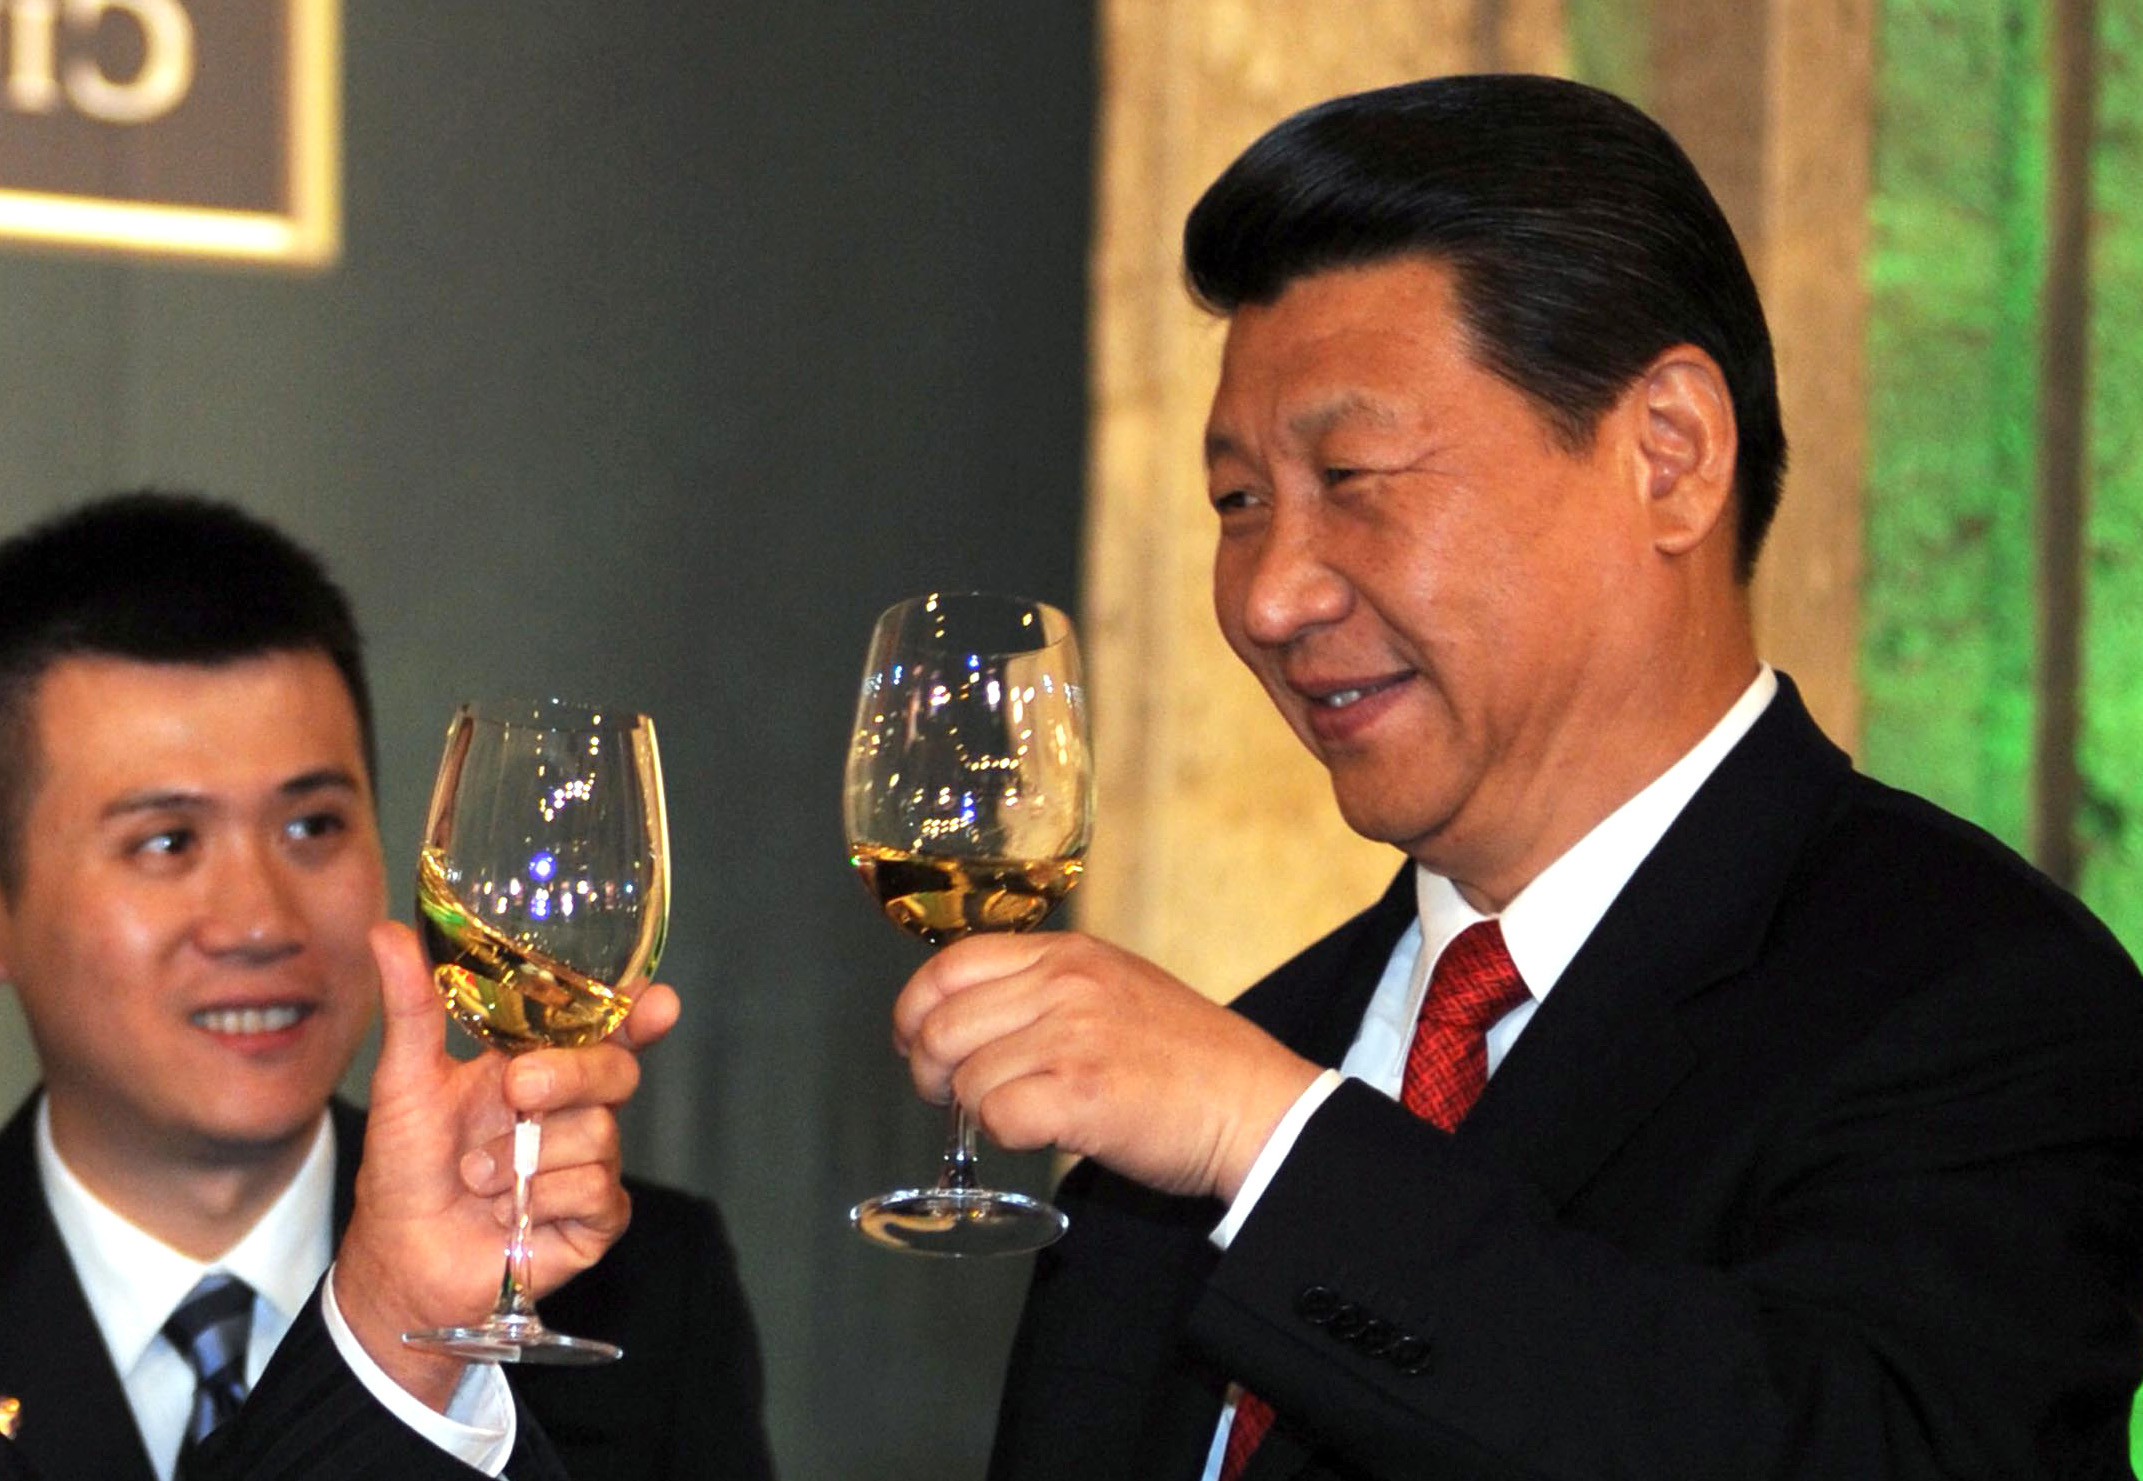 Xi Jinpeng: Plenty to celebrate with Europe. (Wikimedia Commons)